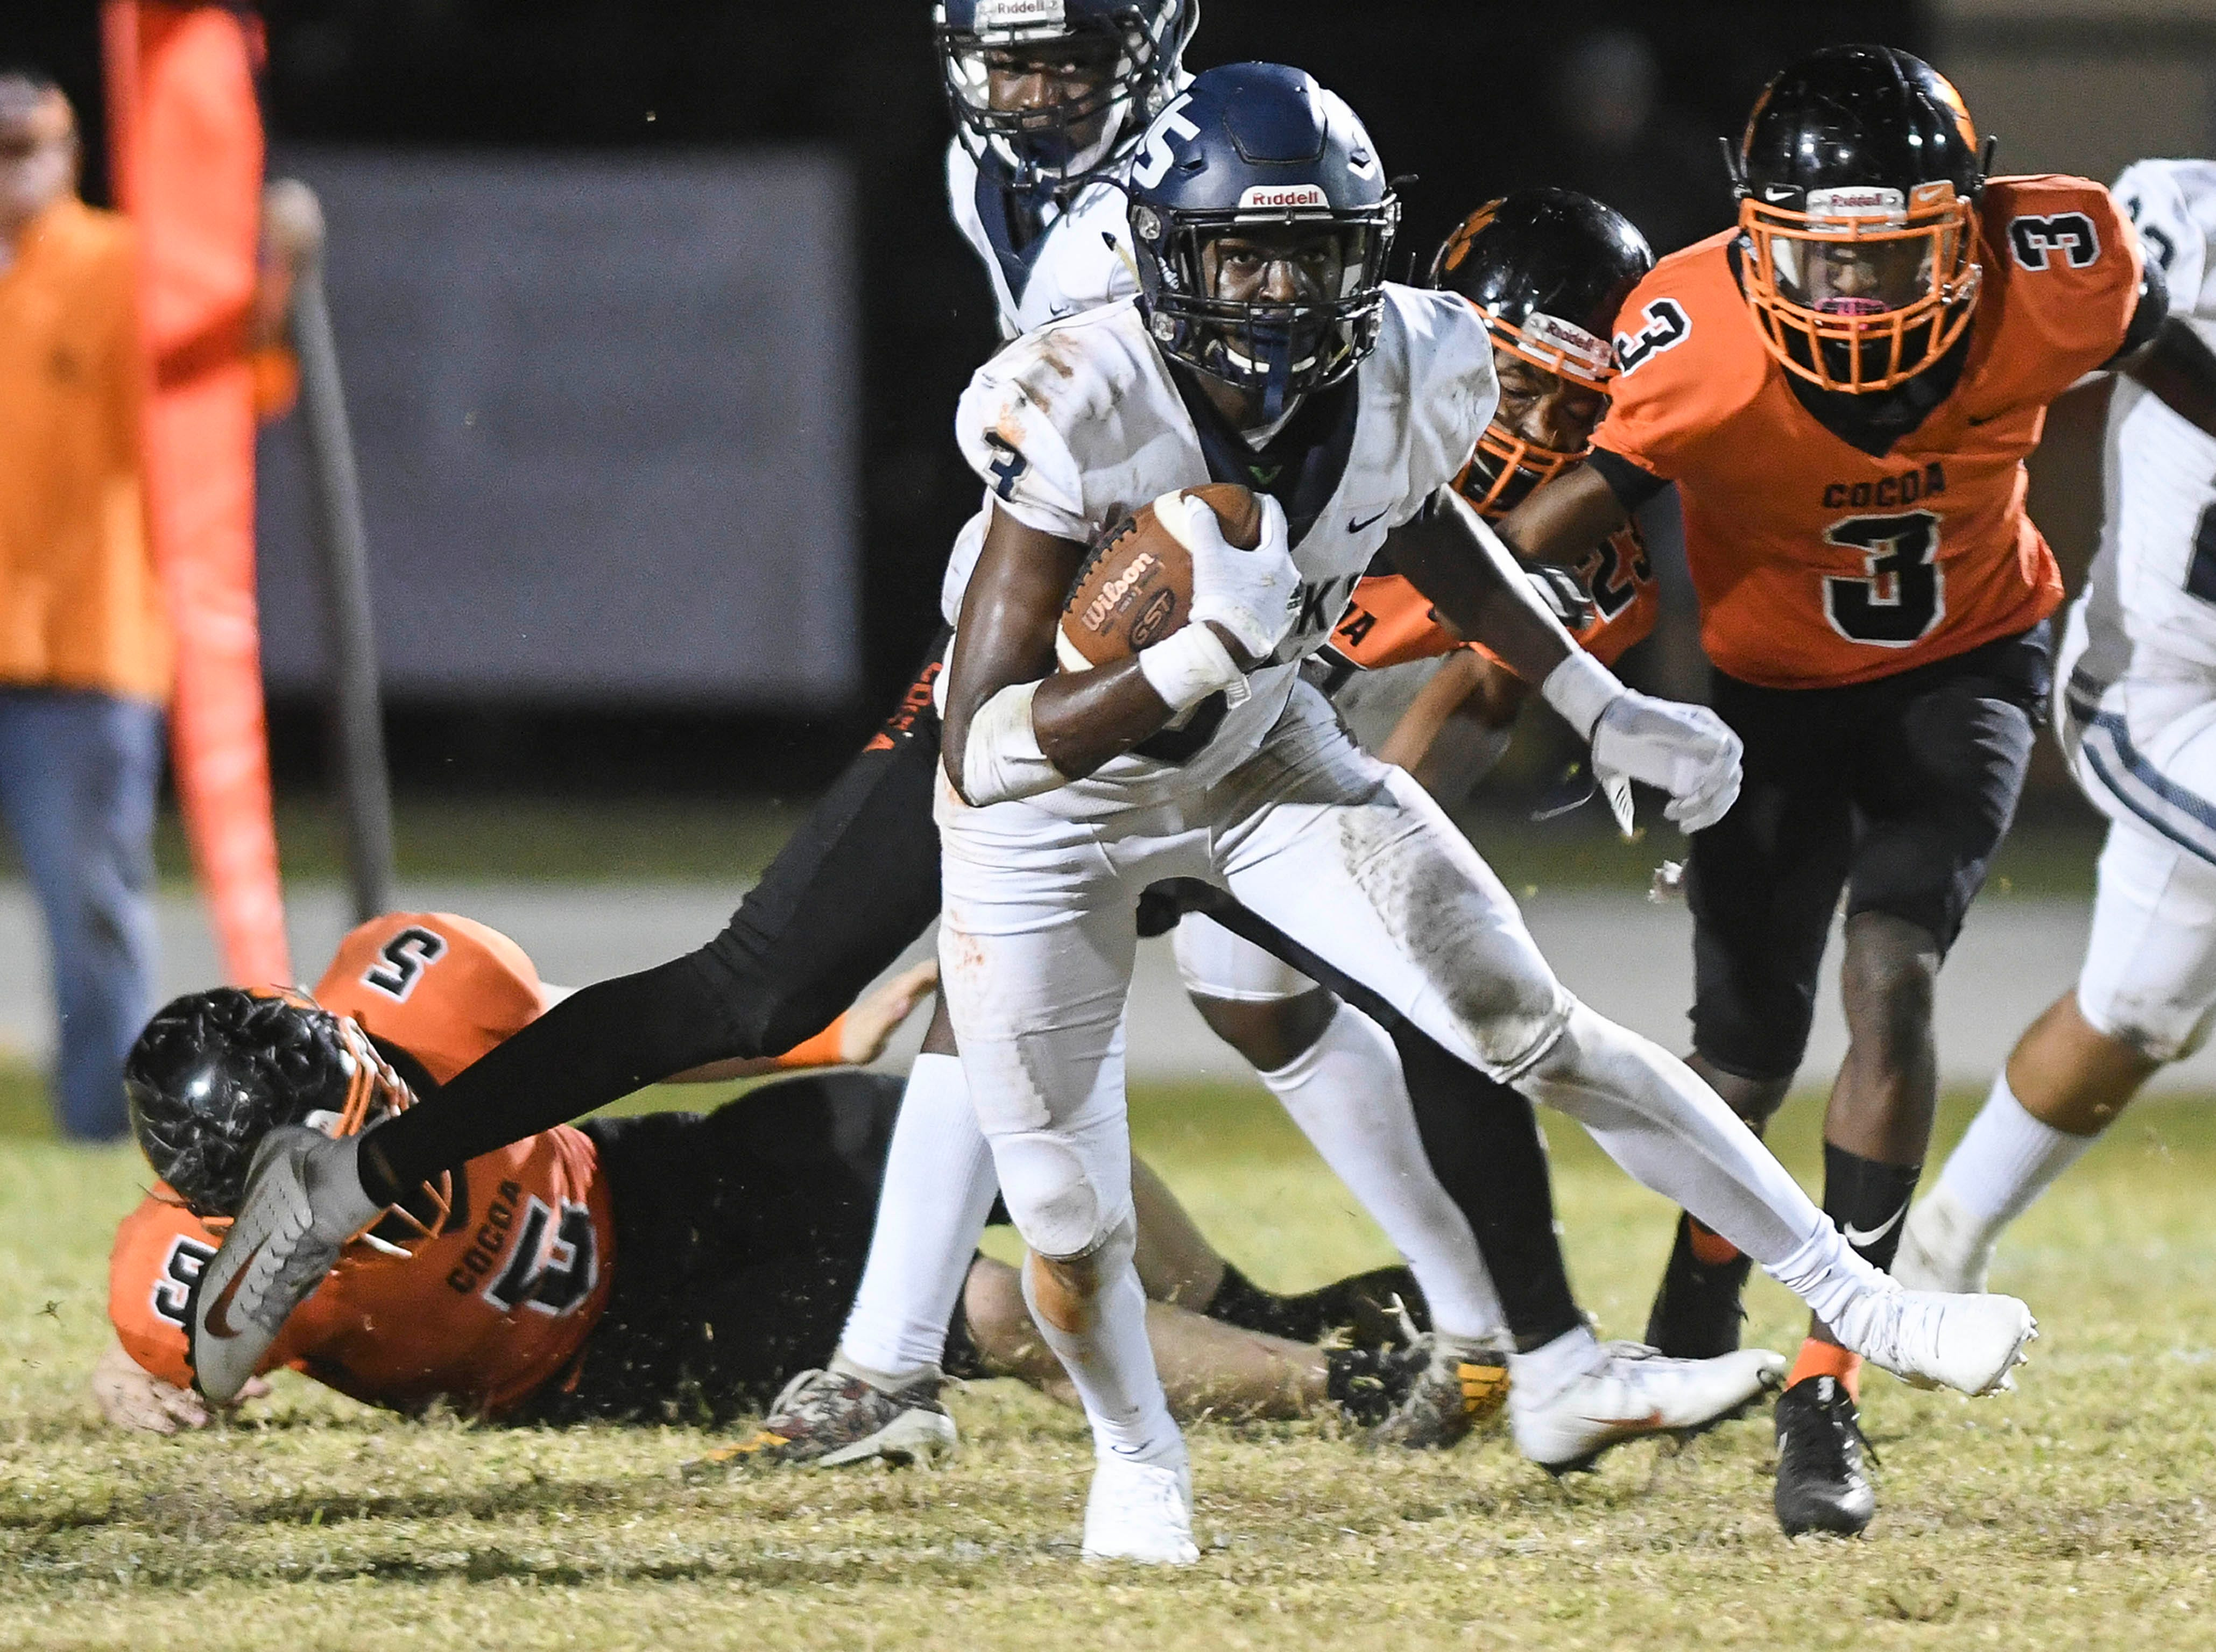 Joshua Sanguinetti of University looks for running room during Friday's Class 4A state semifinal against Cocoa.